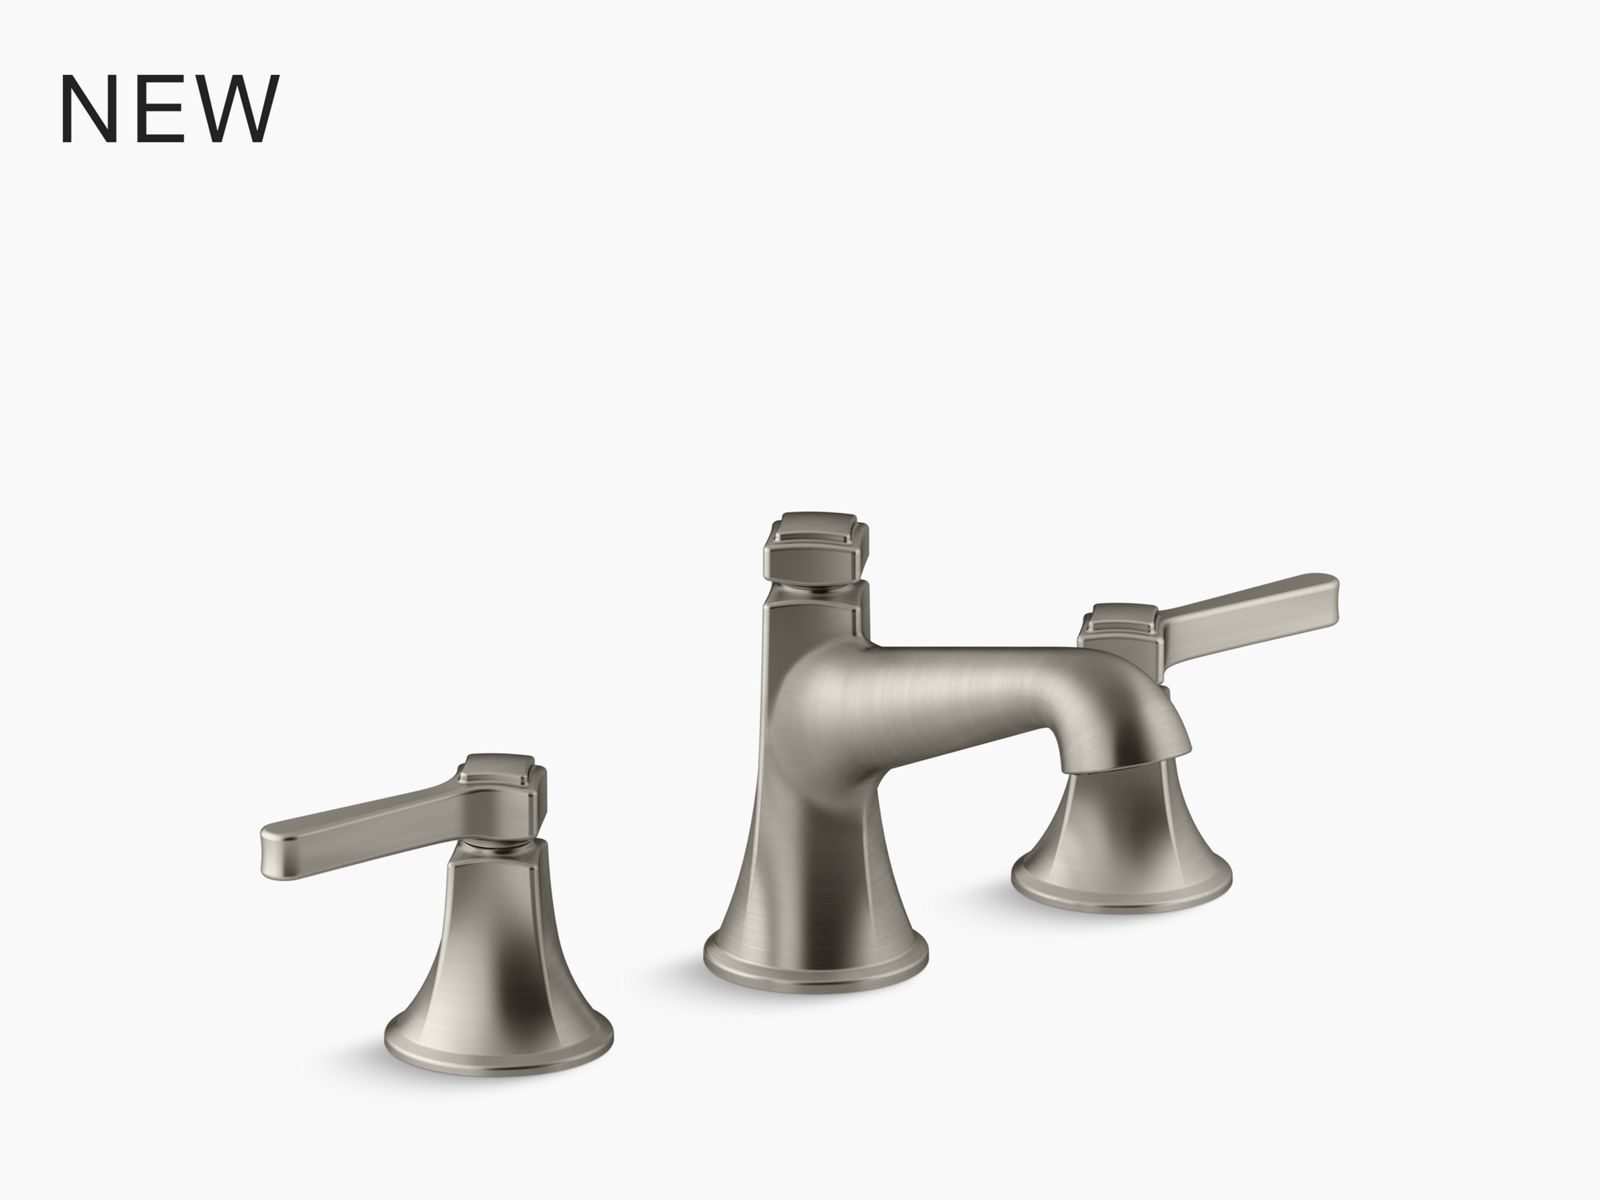 purist widespread bathroom sink faucet with low cross handles and low spout